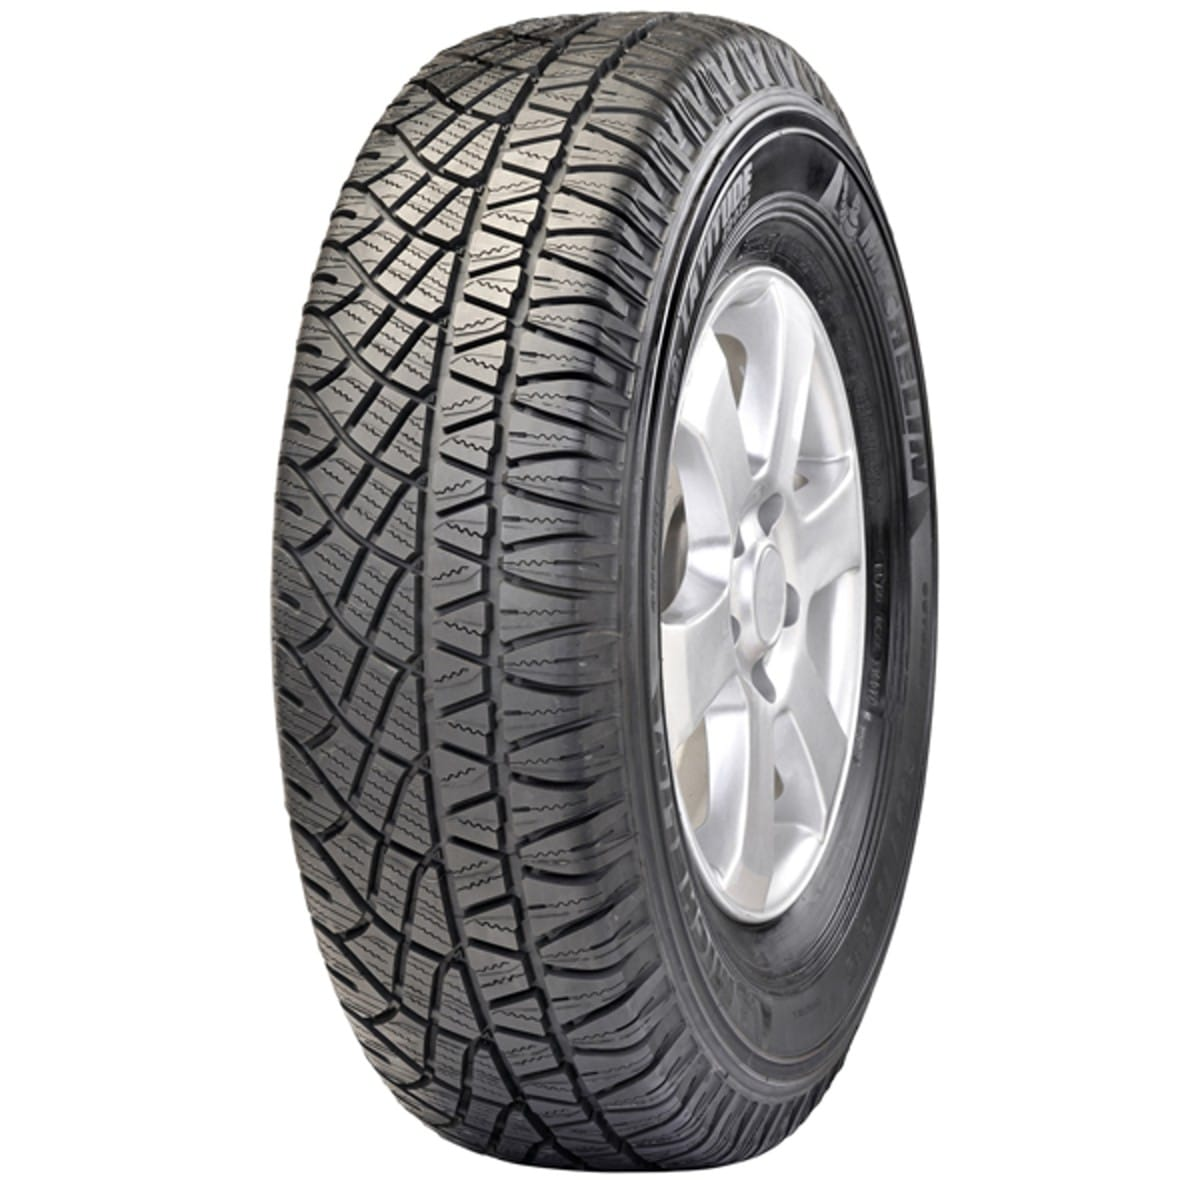 Gomme 4x4 Suv Michelin 235/75 R15 109H Latitude Cross XL Estivo